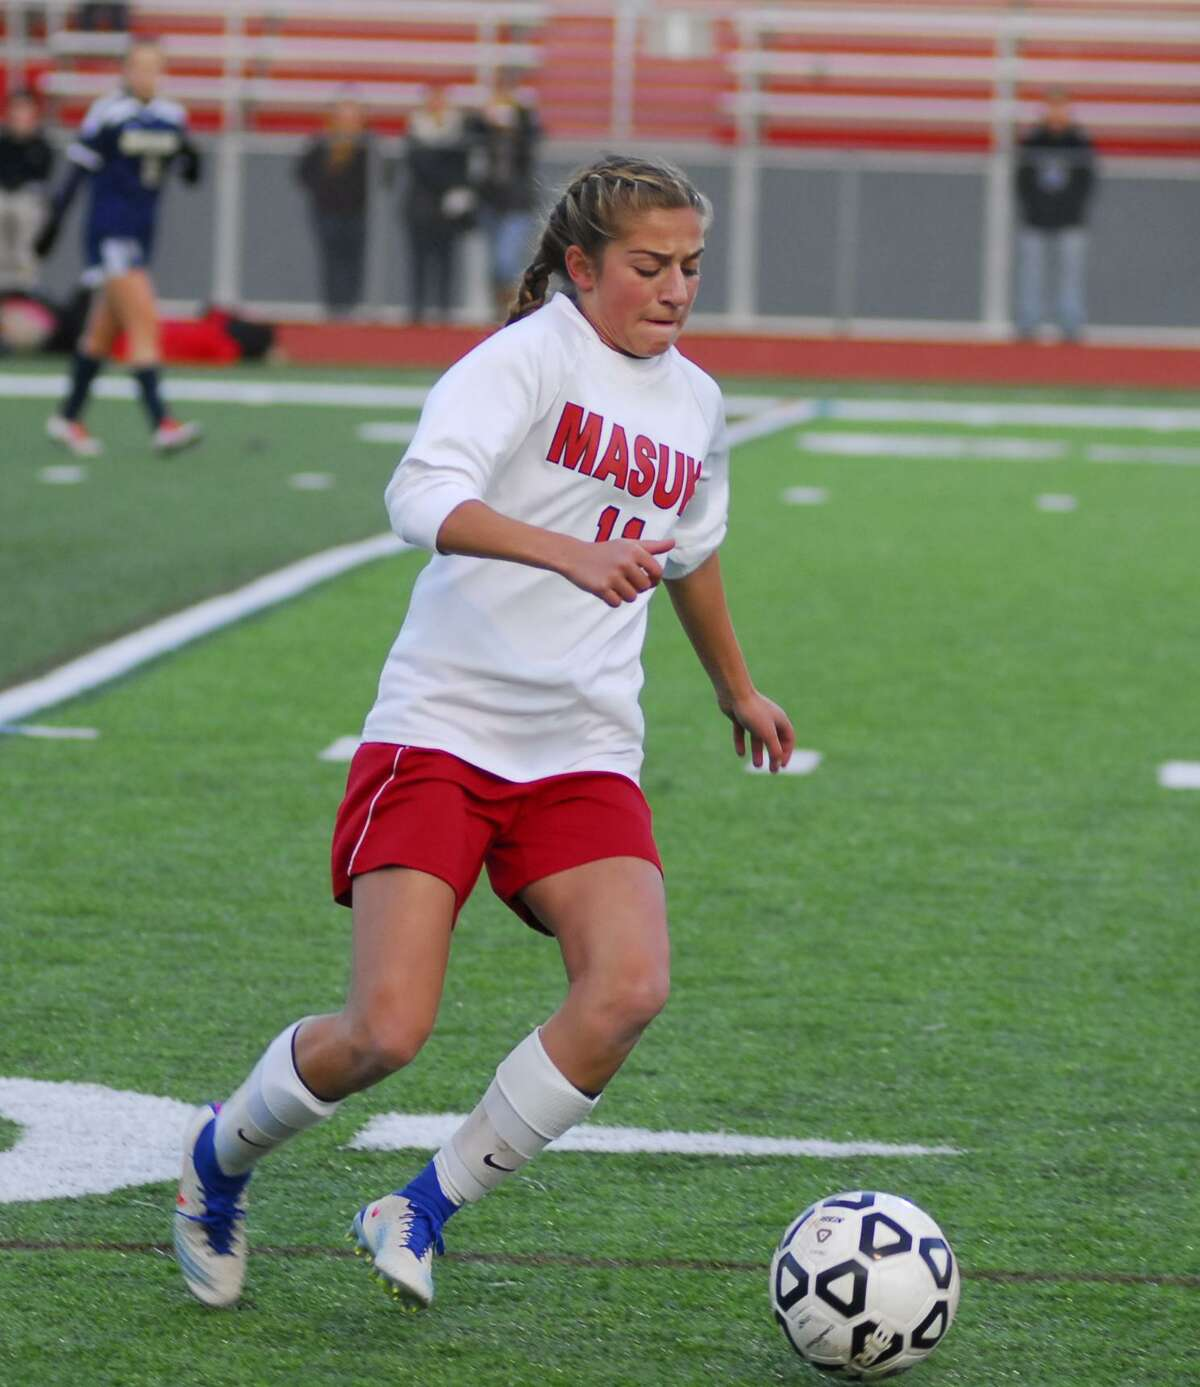 Masuk's Giavanna DeLorenzo controls the ball during a girls soccer SWC semifinal match against ND-Fairfield on Tuesday.